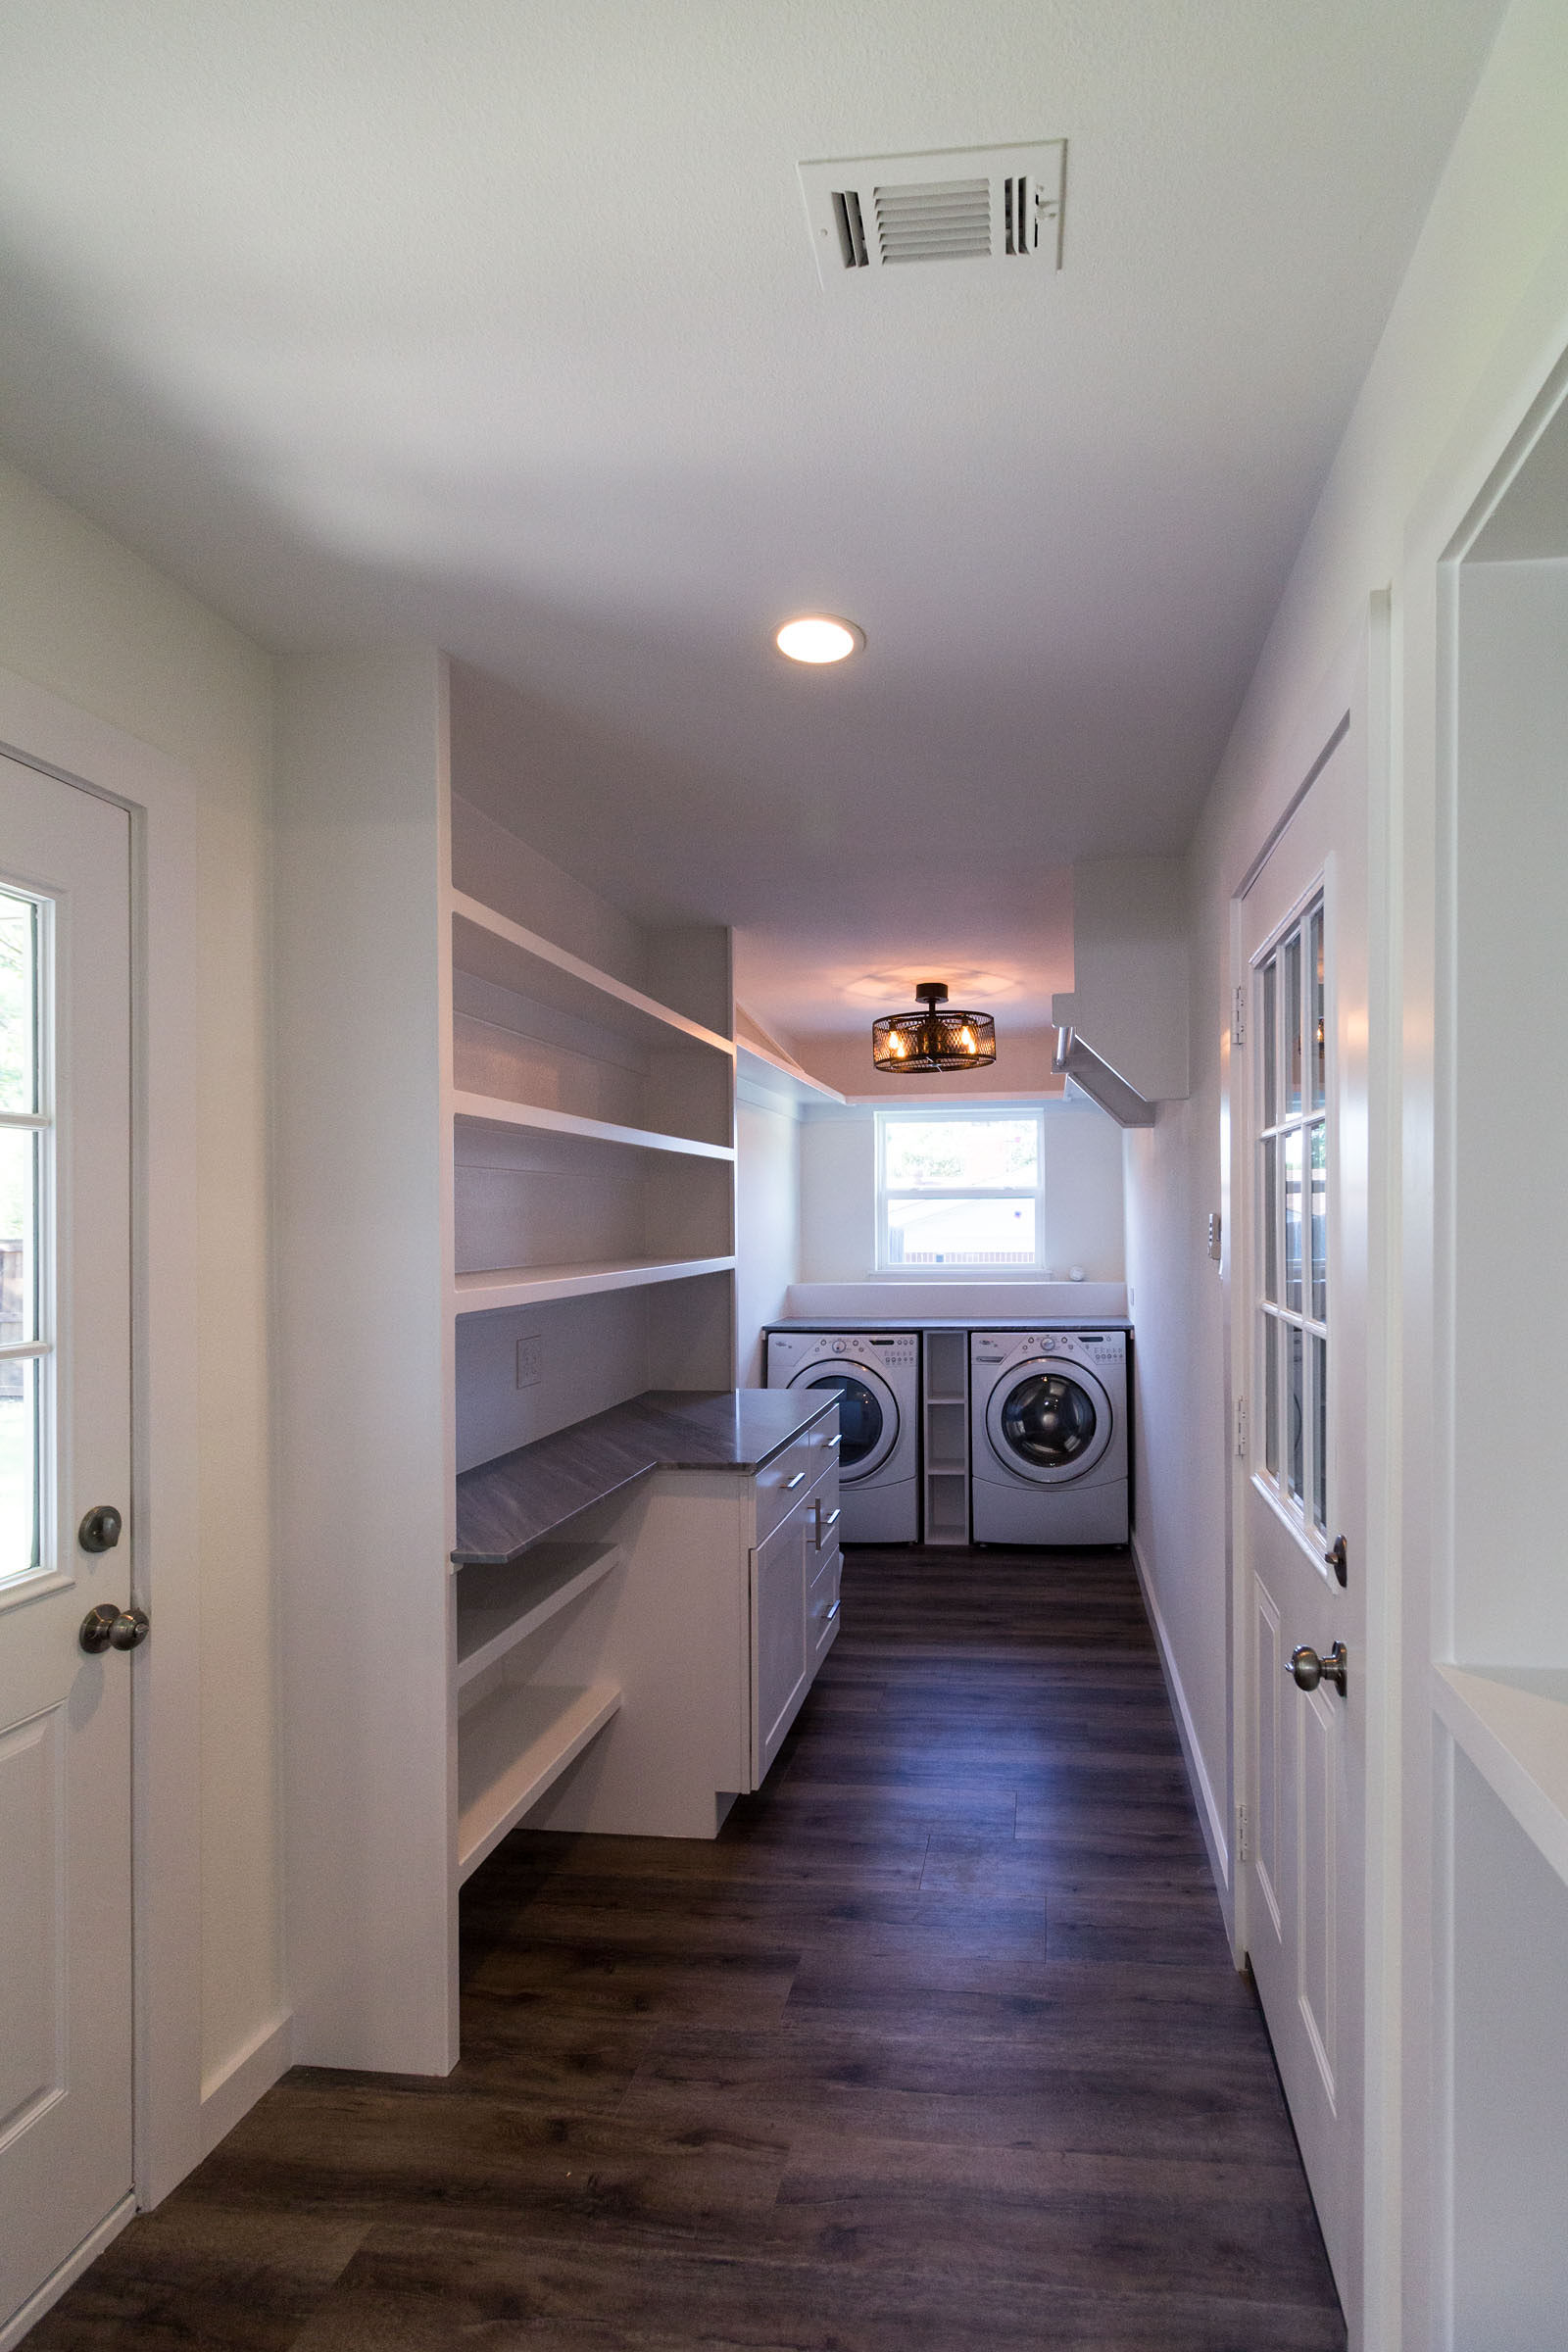 Mud room and laundry room remodel with built in shelves and white walls